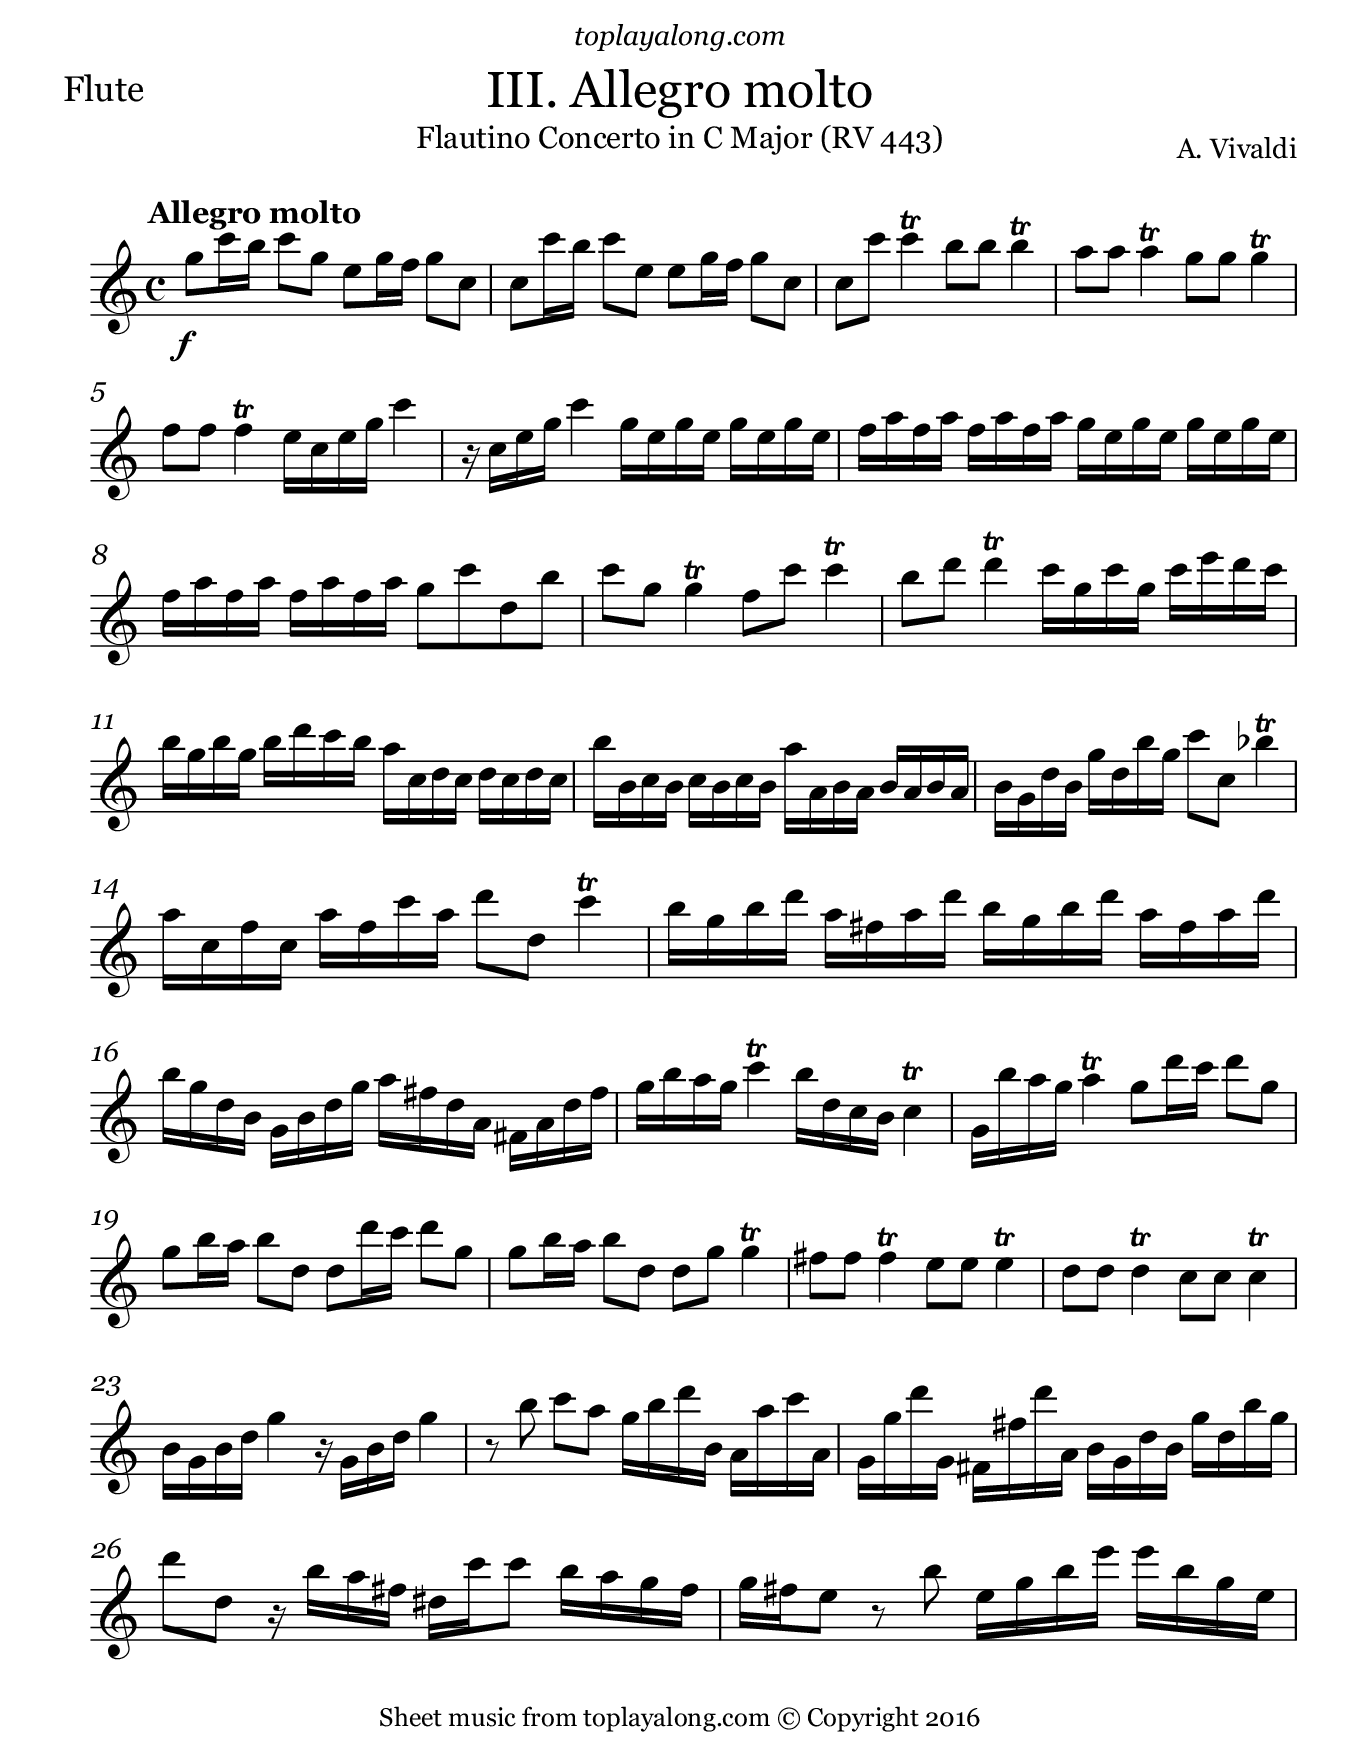 Flautino Concerto in C major RV 443 (III. Allegro molto) by Vivaldi. Sheet music for Flute, page 1.